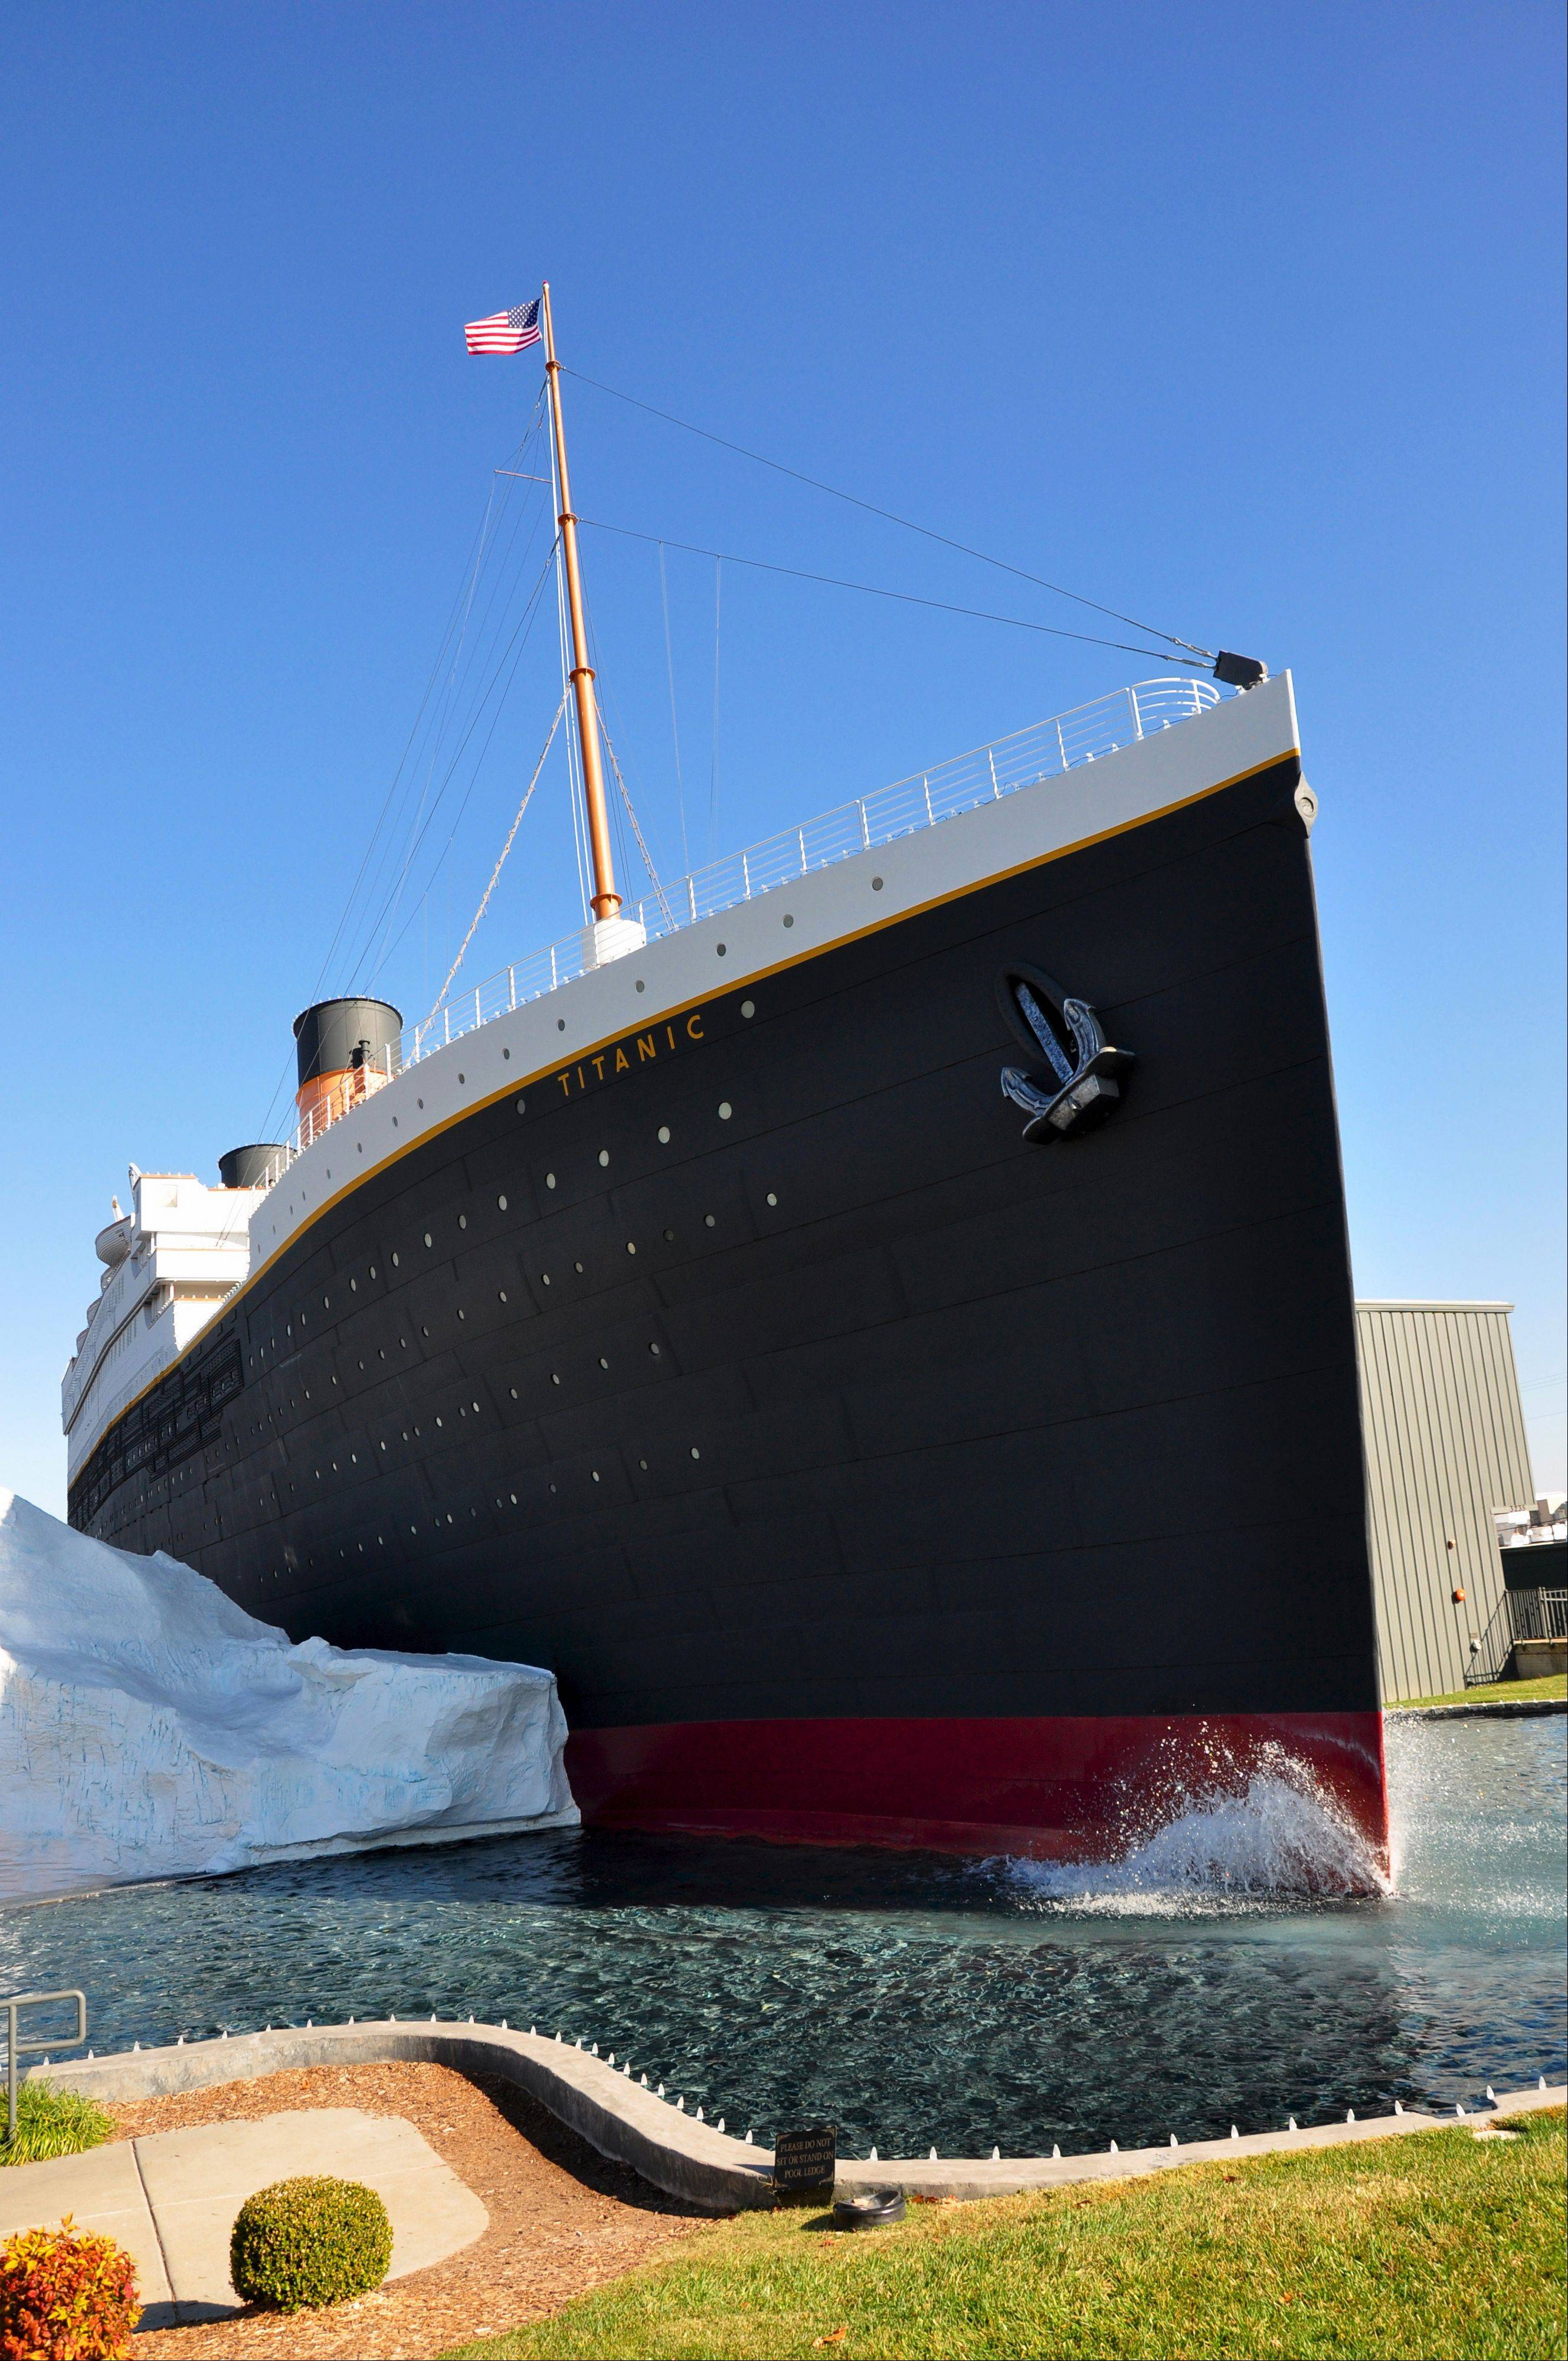 Heart-rending exhibits of artifacts from the ill-fated Titanic make the Titanic Museum a must-see in Branson.